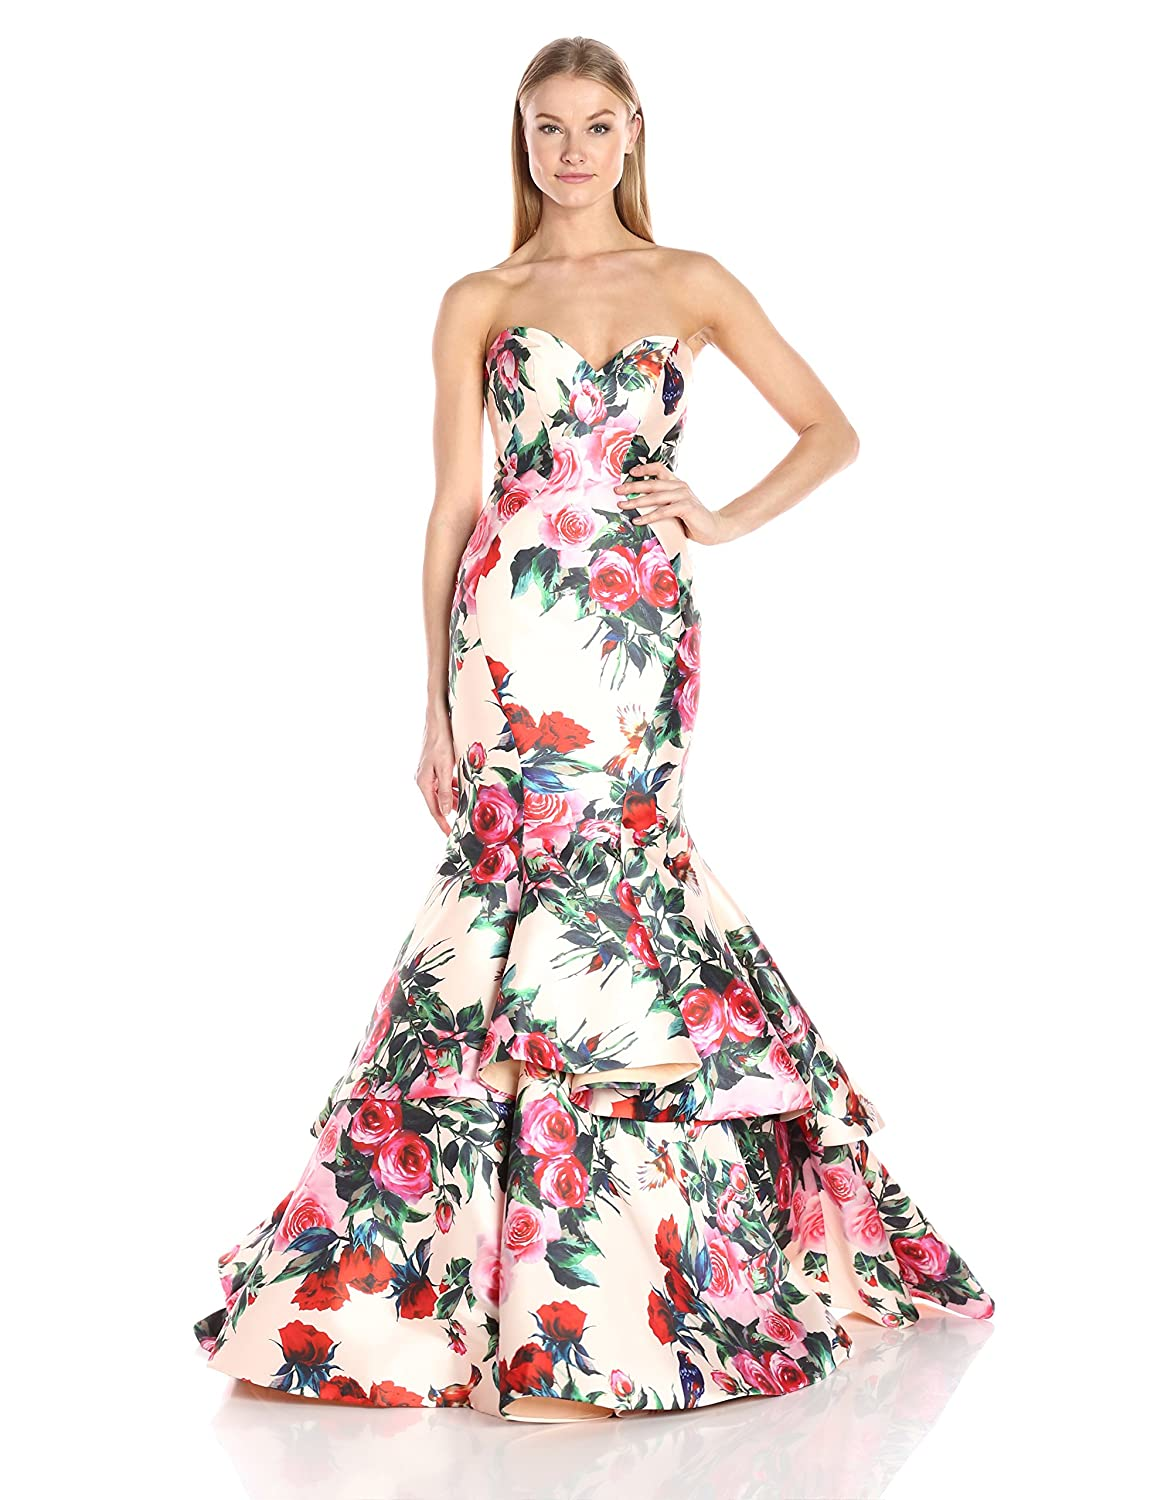 f4fddd500b9 Amazon.com  Mac Duggal Women s Sweetheart Floral Mermaid Gown  Clothing